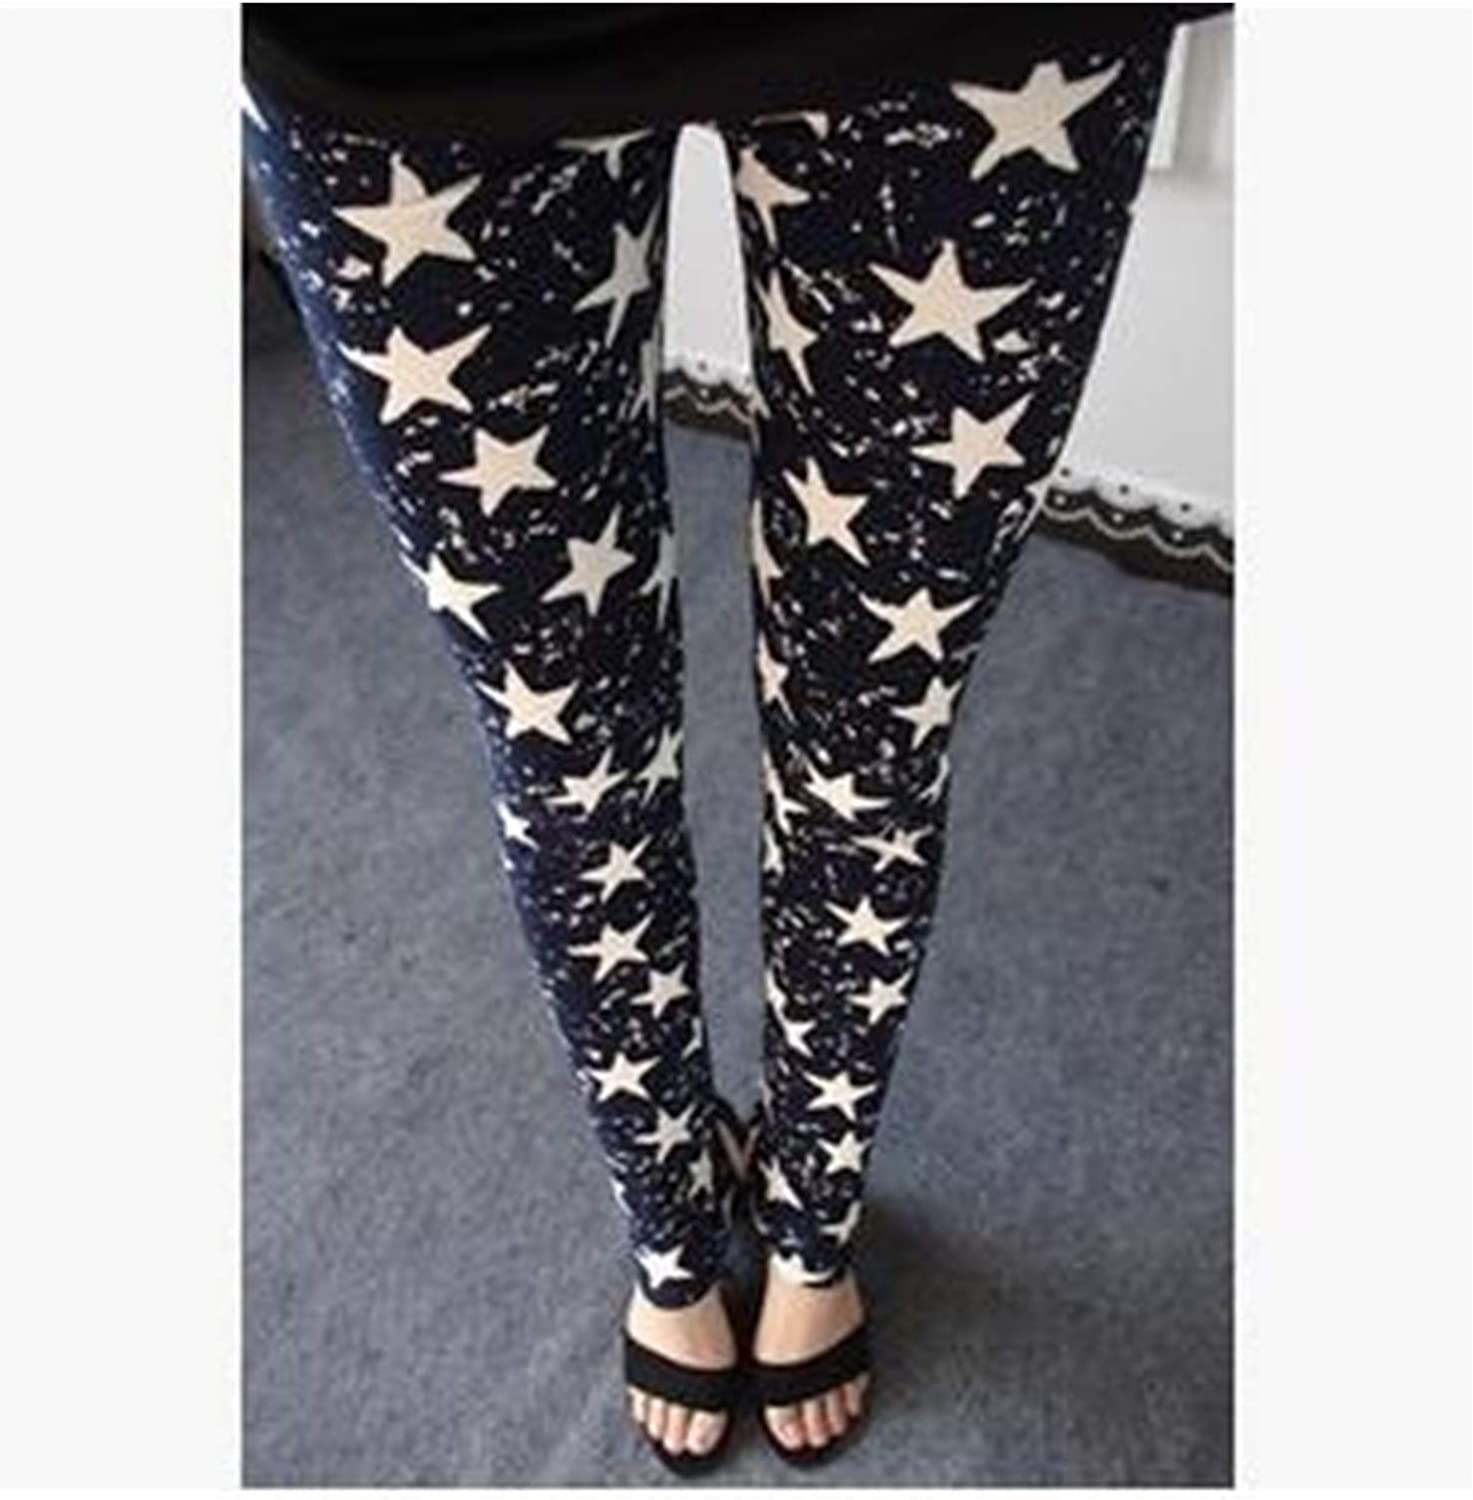 Discount is also underway Leggings Camouflage NEW Womens for Leggins Stret Style Graffiti Slim